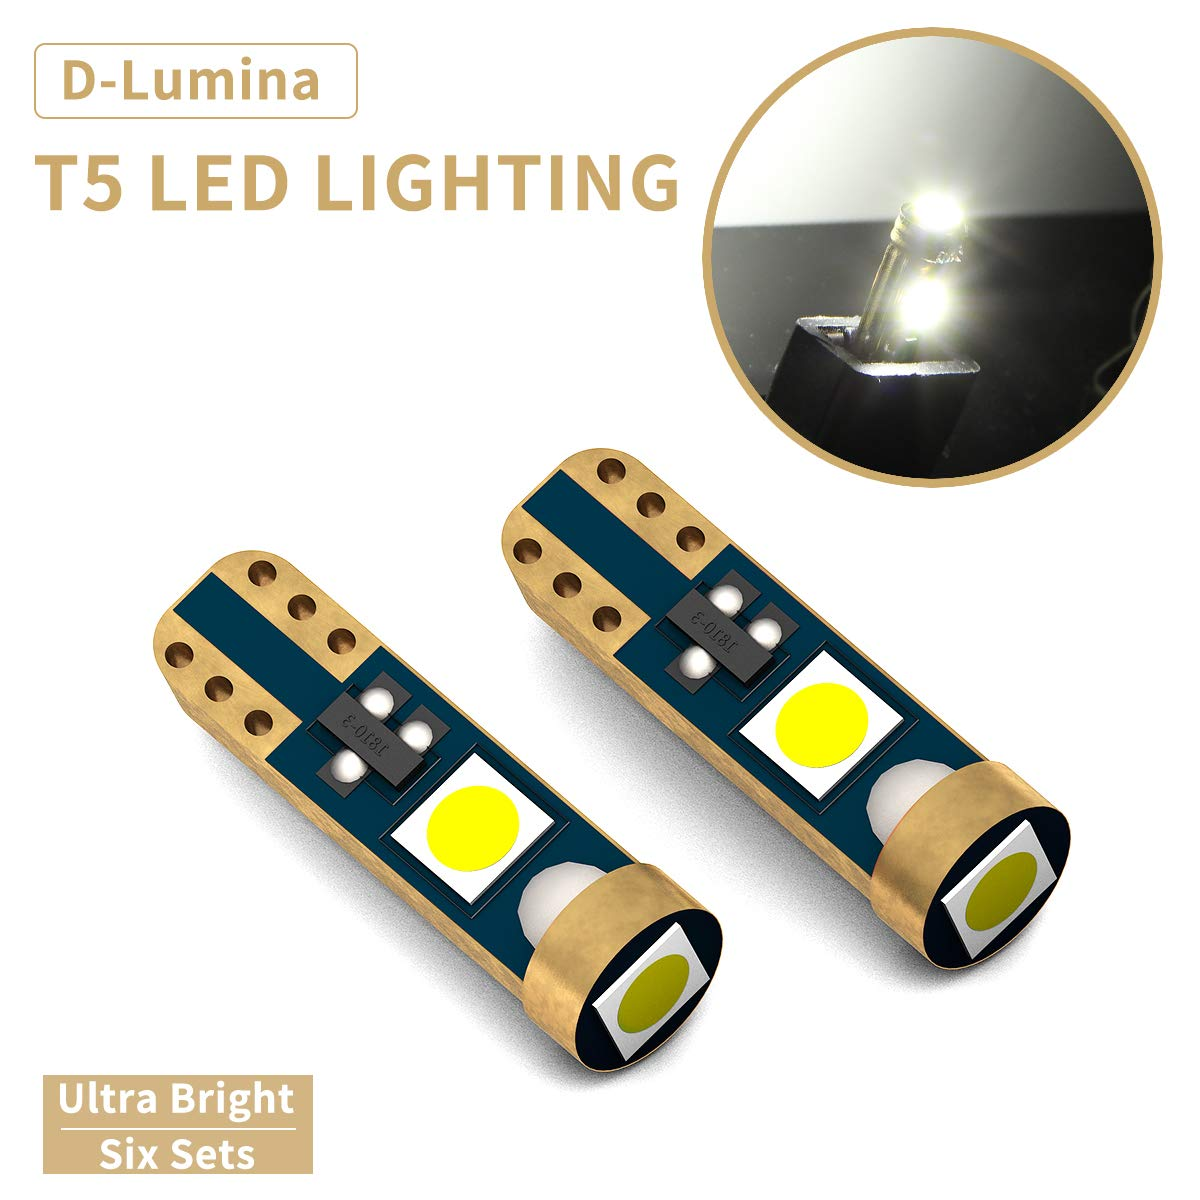 D-Lumina T5 74 2721 17 18 37 70 W3W Wedge LED Bulb,Canbus Error Free 3SMD 3030 Chips For Car Interior Dashboard Instrument Gauge Cluster Indicator Light Panel Dash Lamp,Xenon White,10 Pack